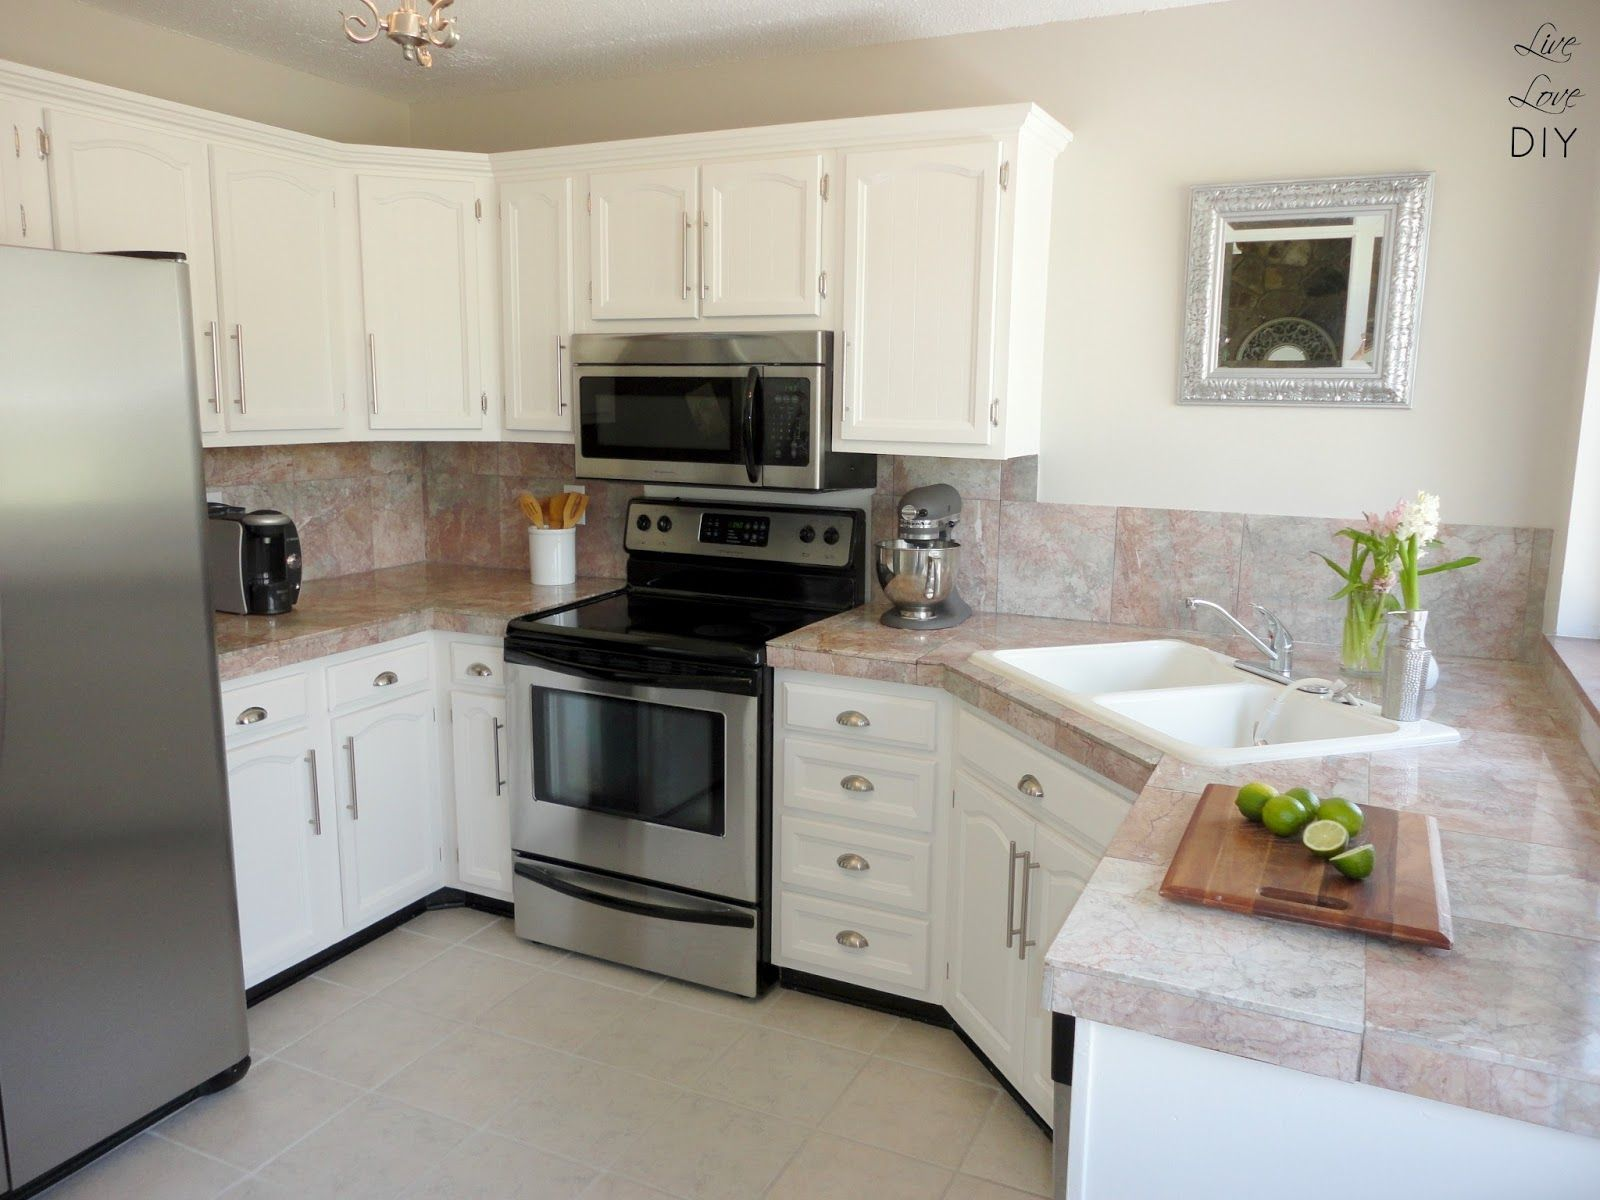 Painted White Kitchen Cabinets Design Decorating 77920 Light